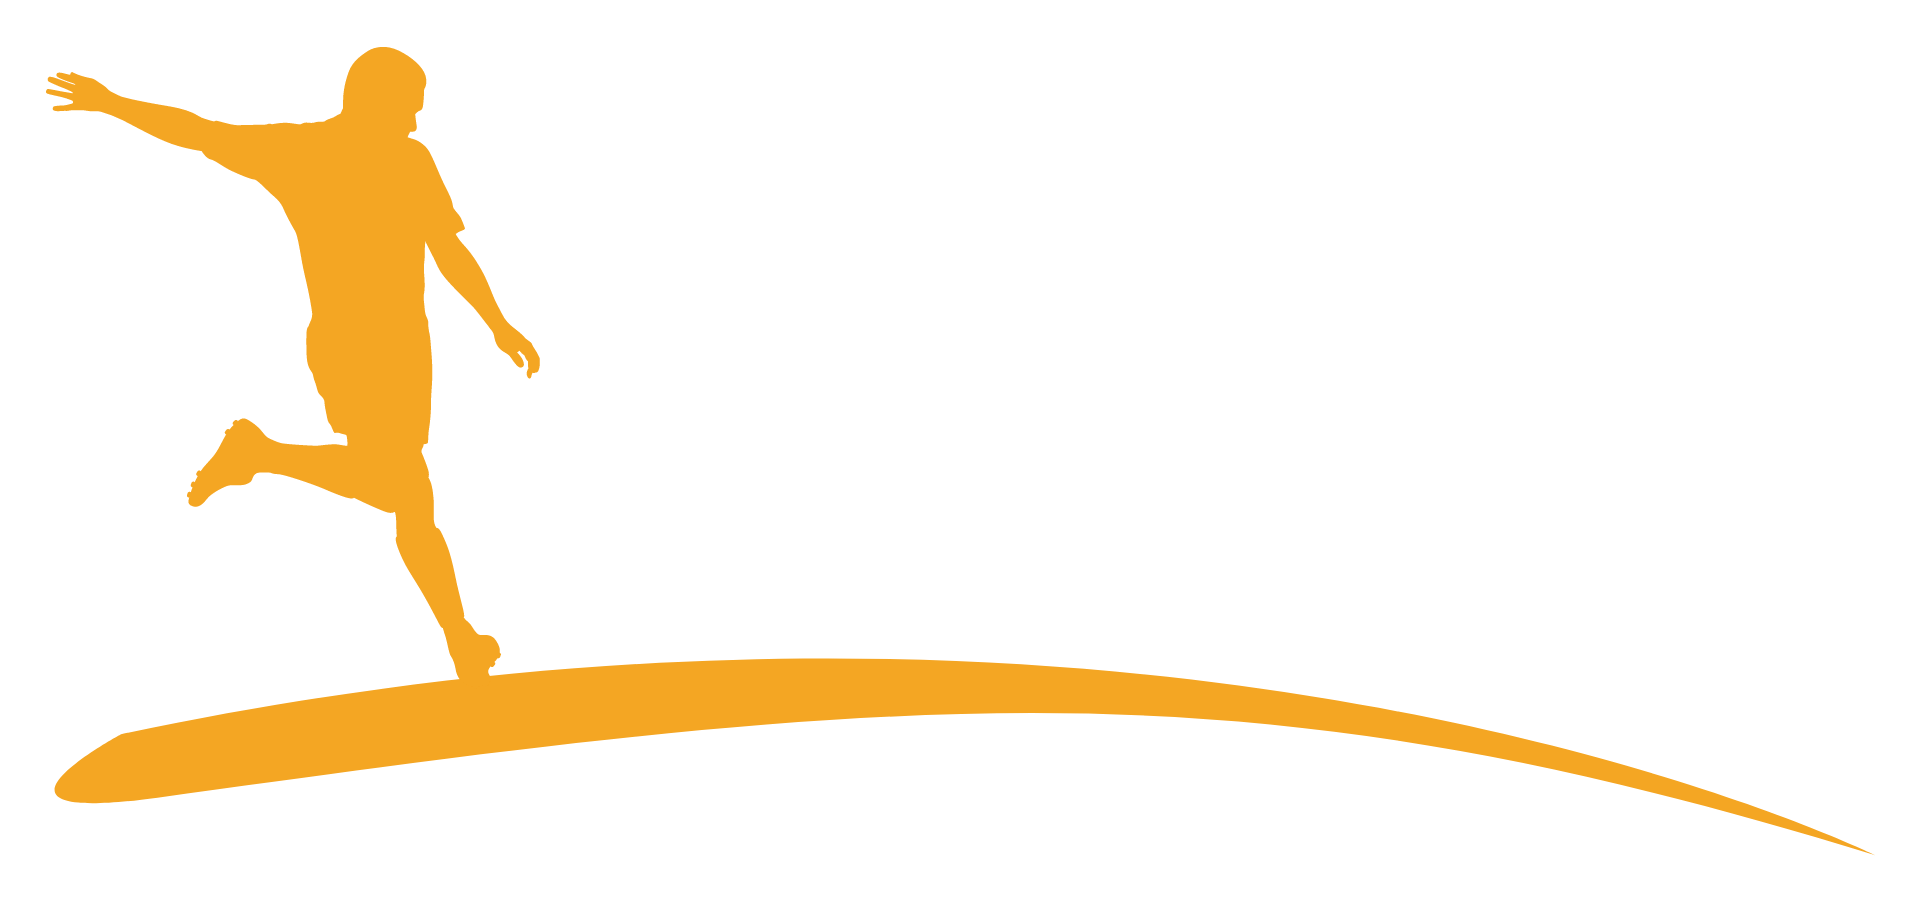 Hattrick Sports Consultancy